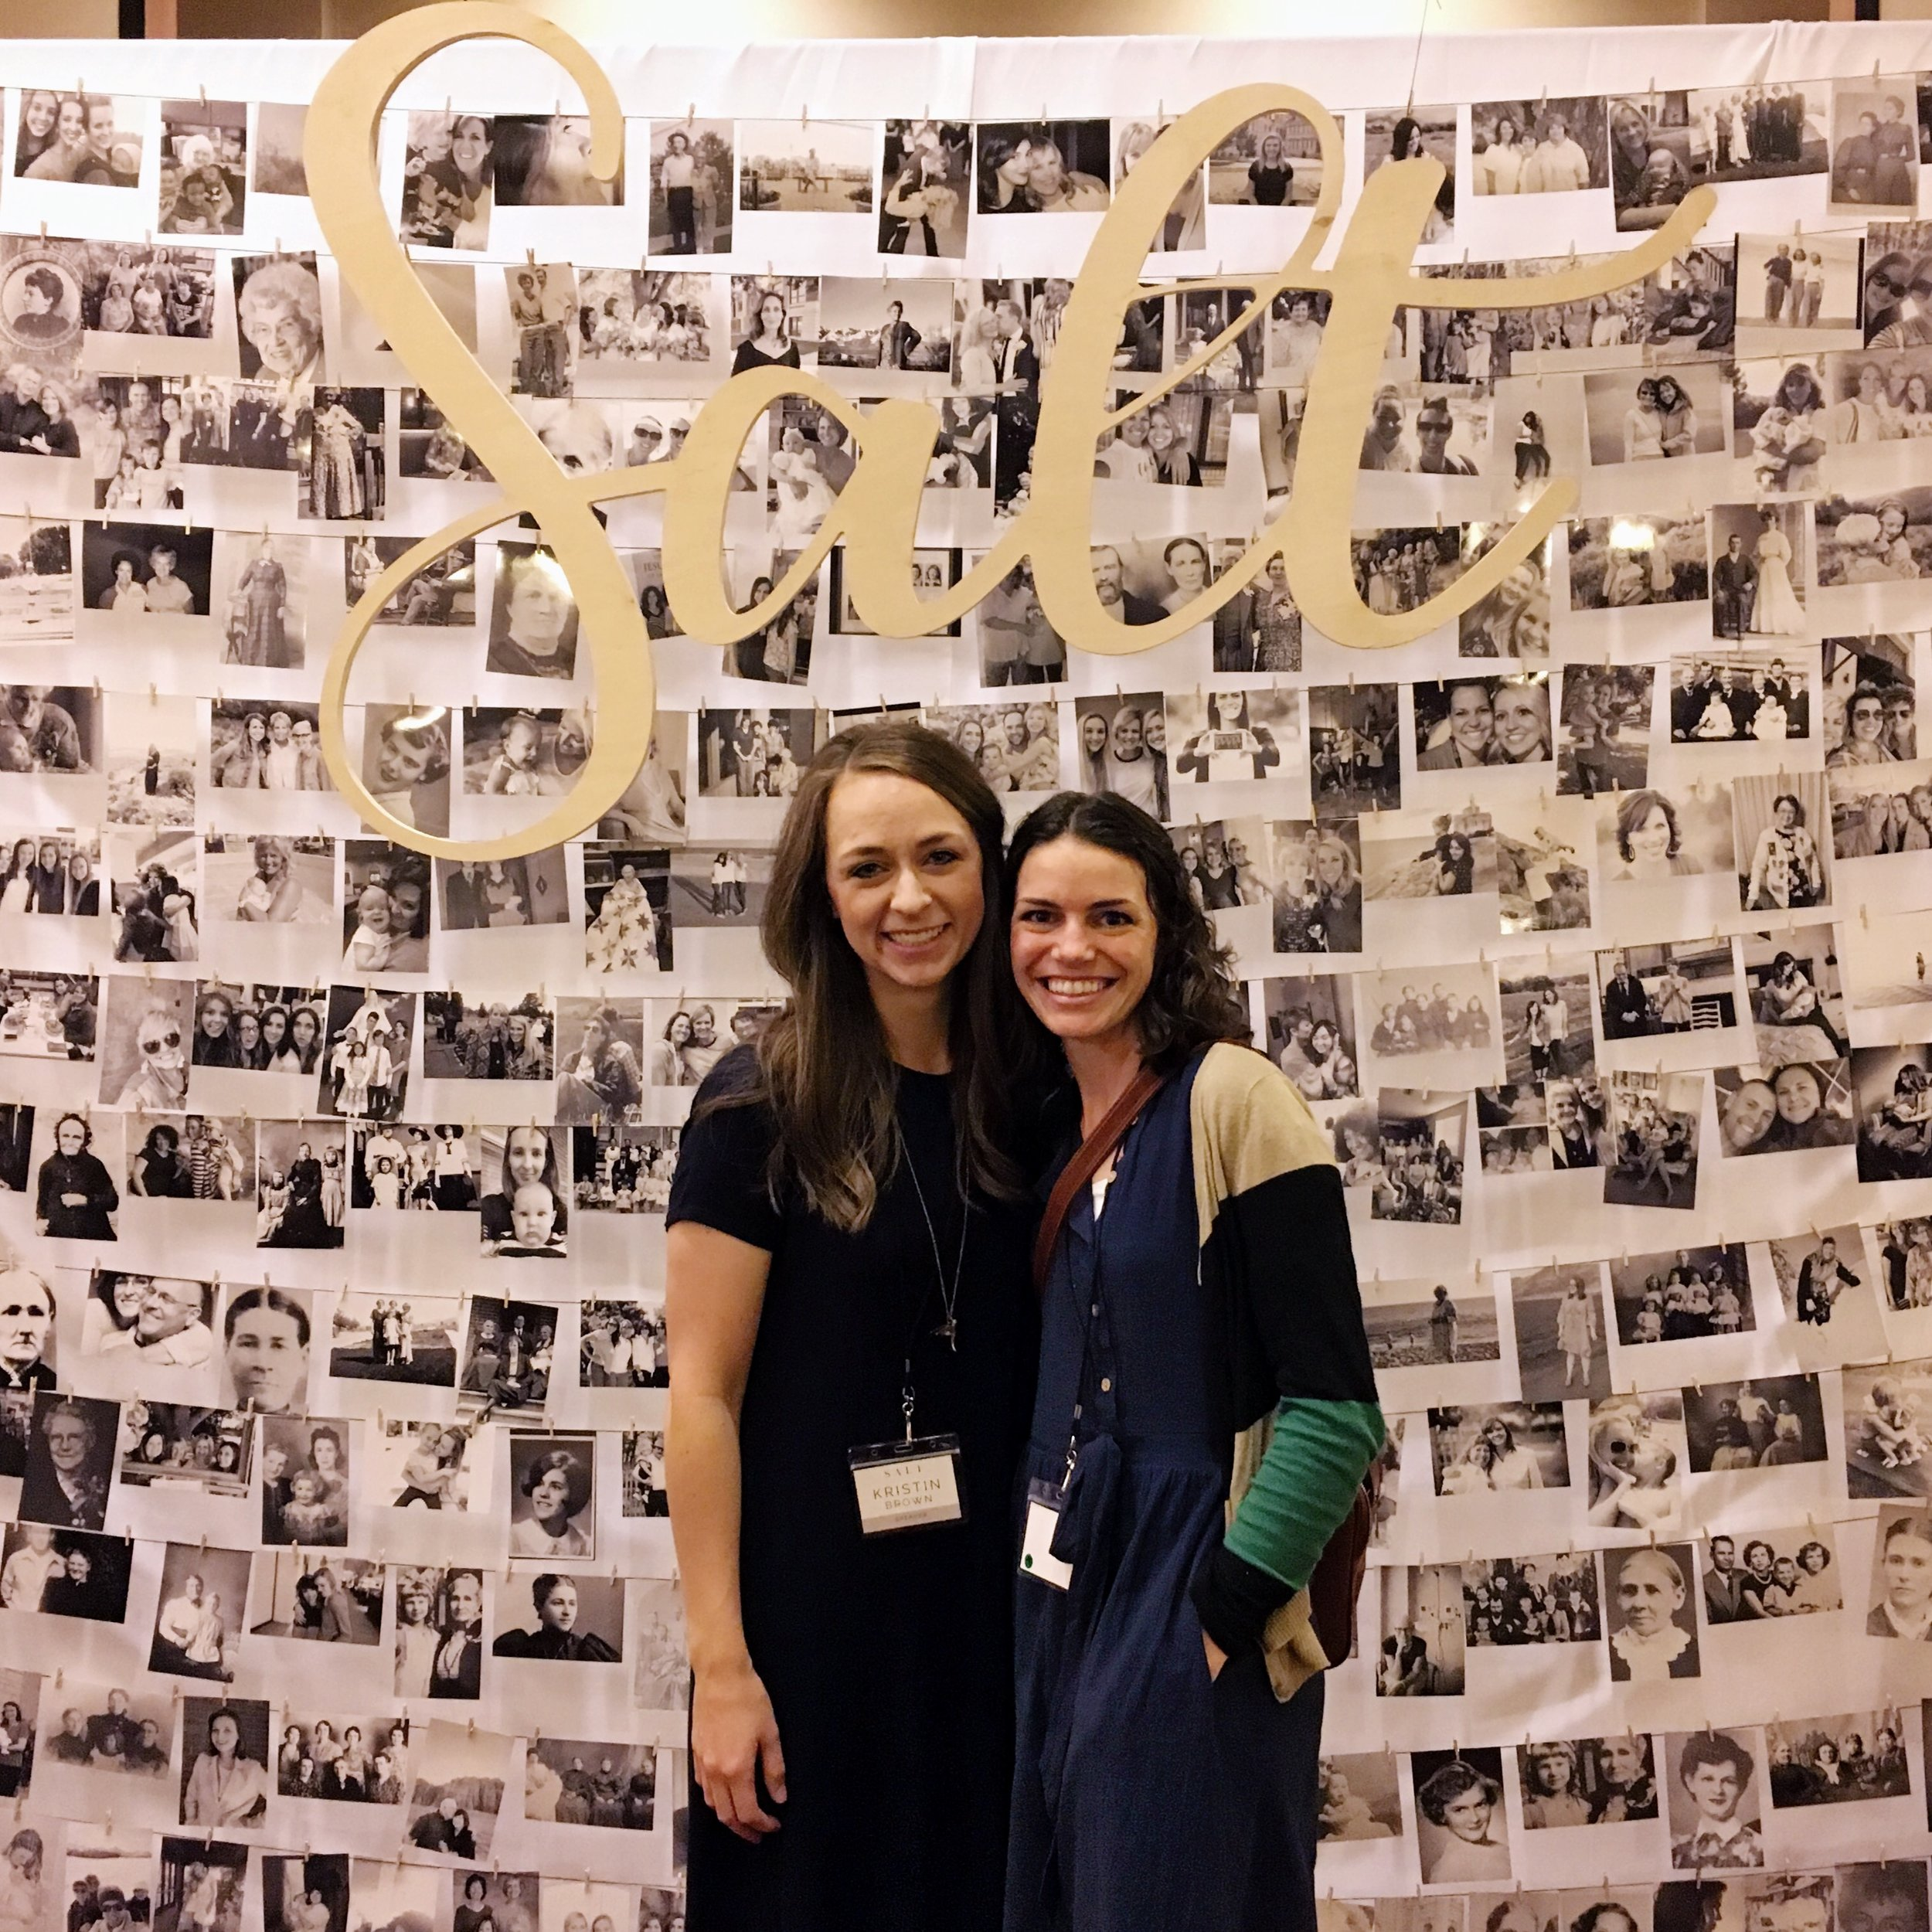 Here we are at SALT. We Loved this wall of photos that was a compilation of different faithful women in our lives, which is pretty neat.